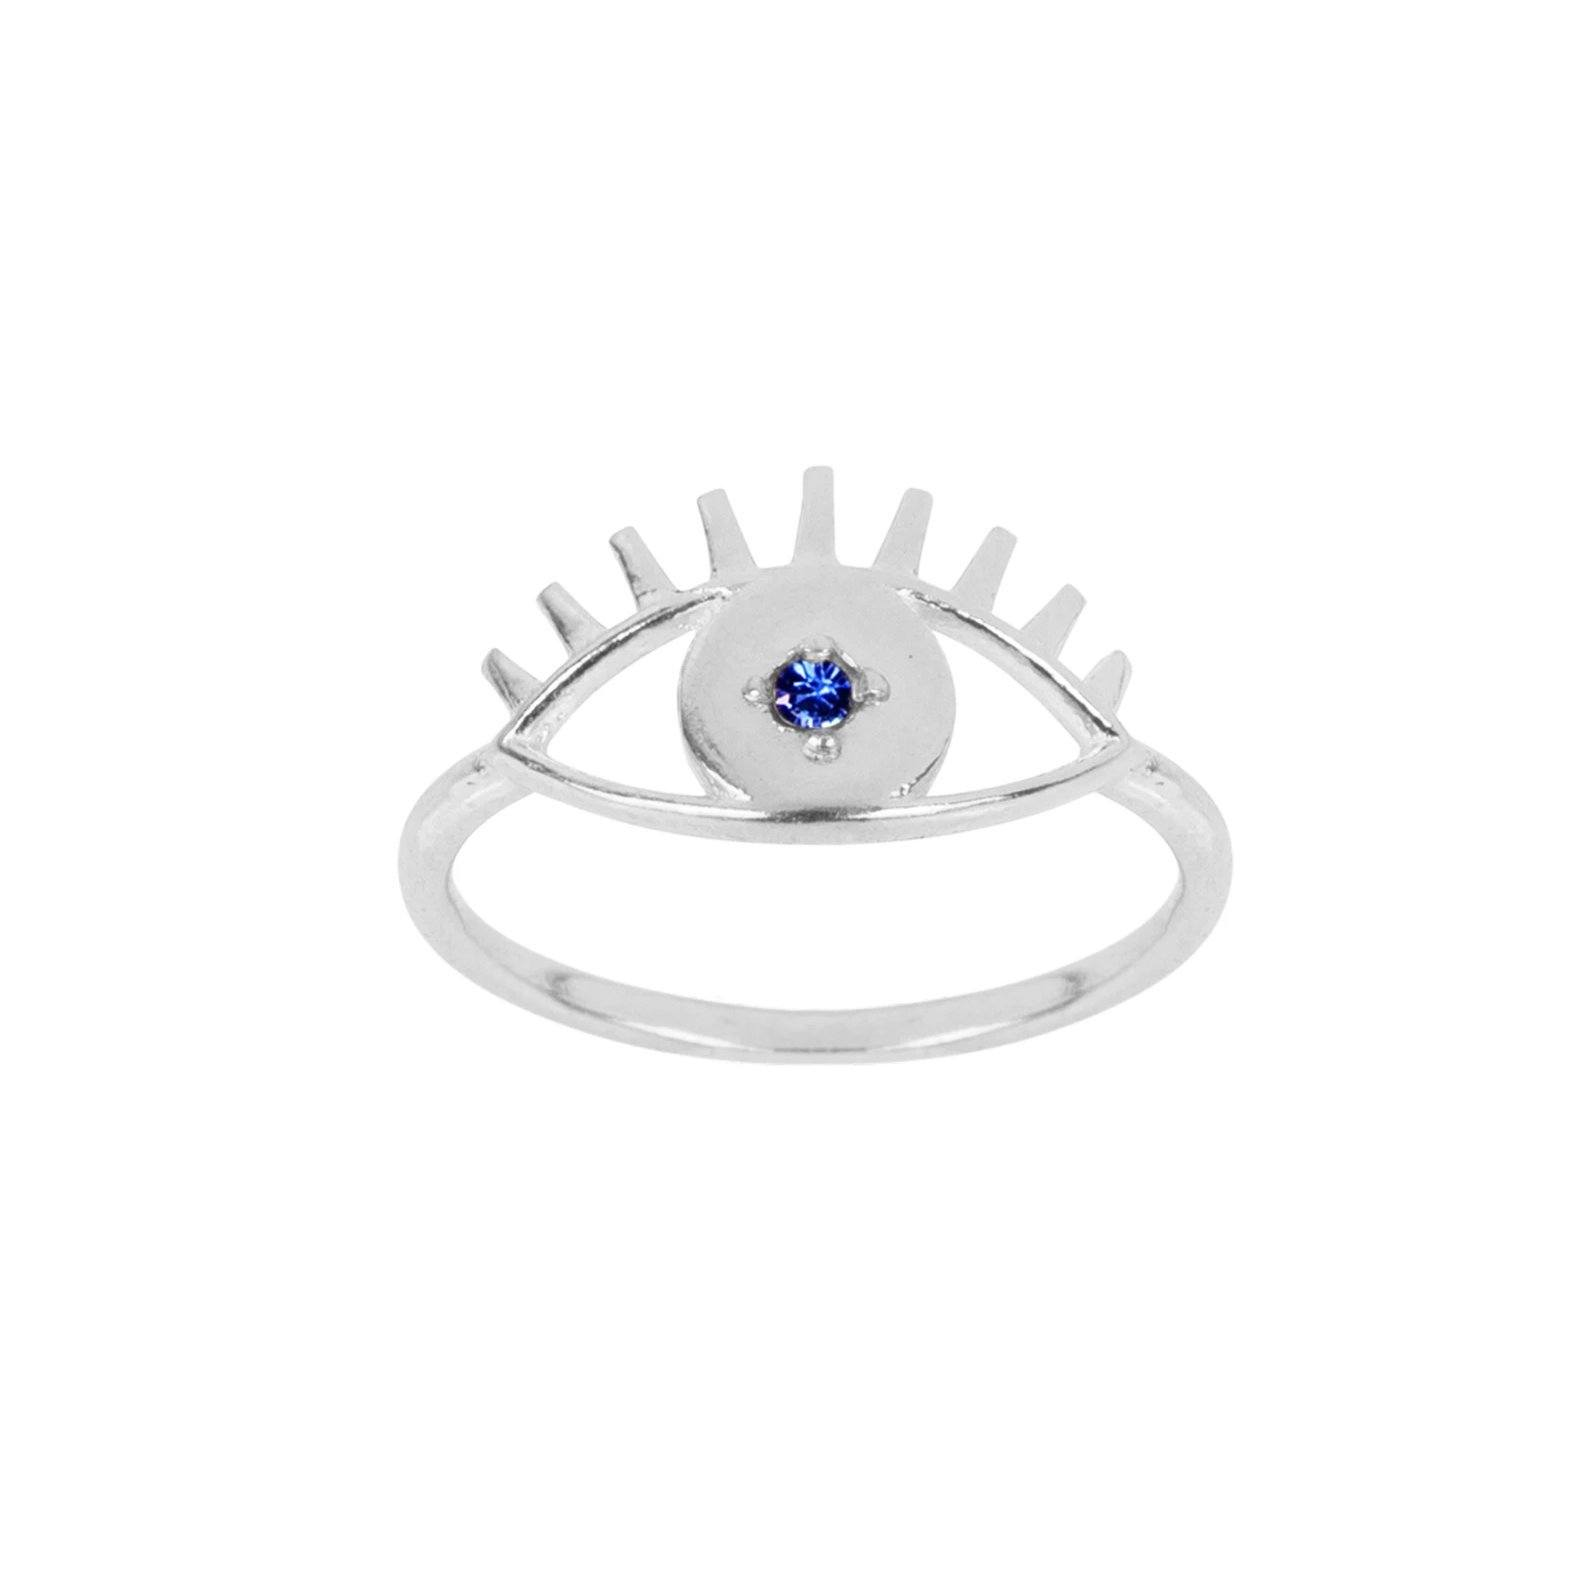 Up close image of the silver Evil Eye Ring with a blue stone.